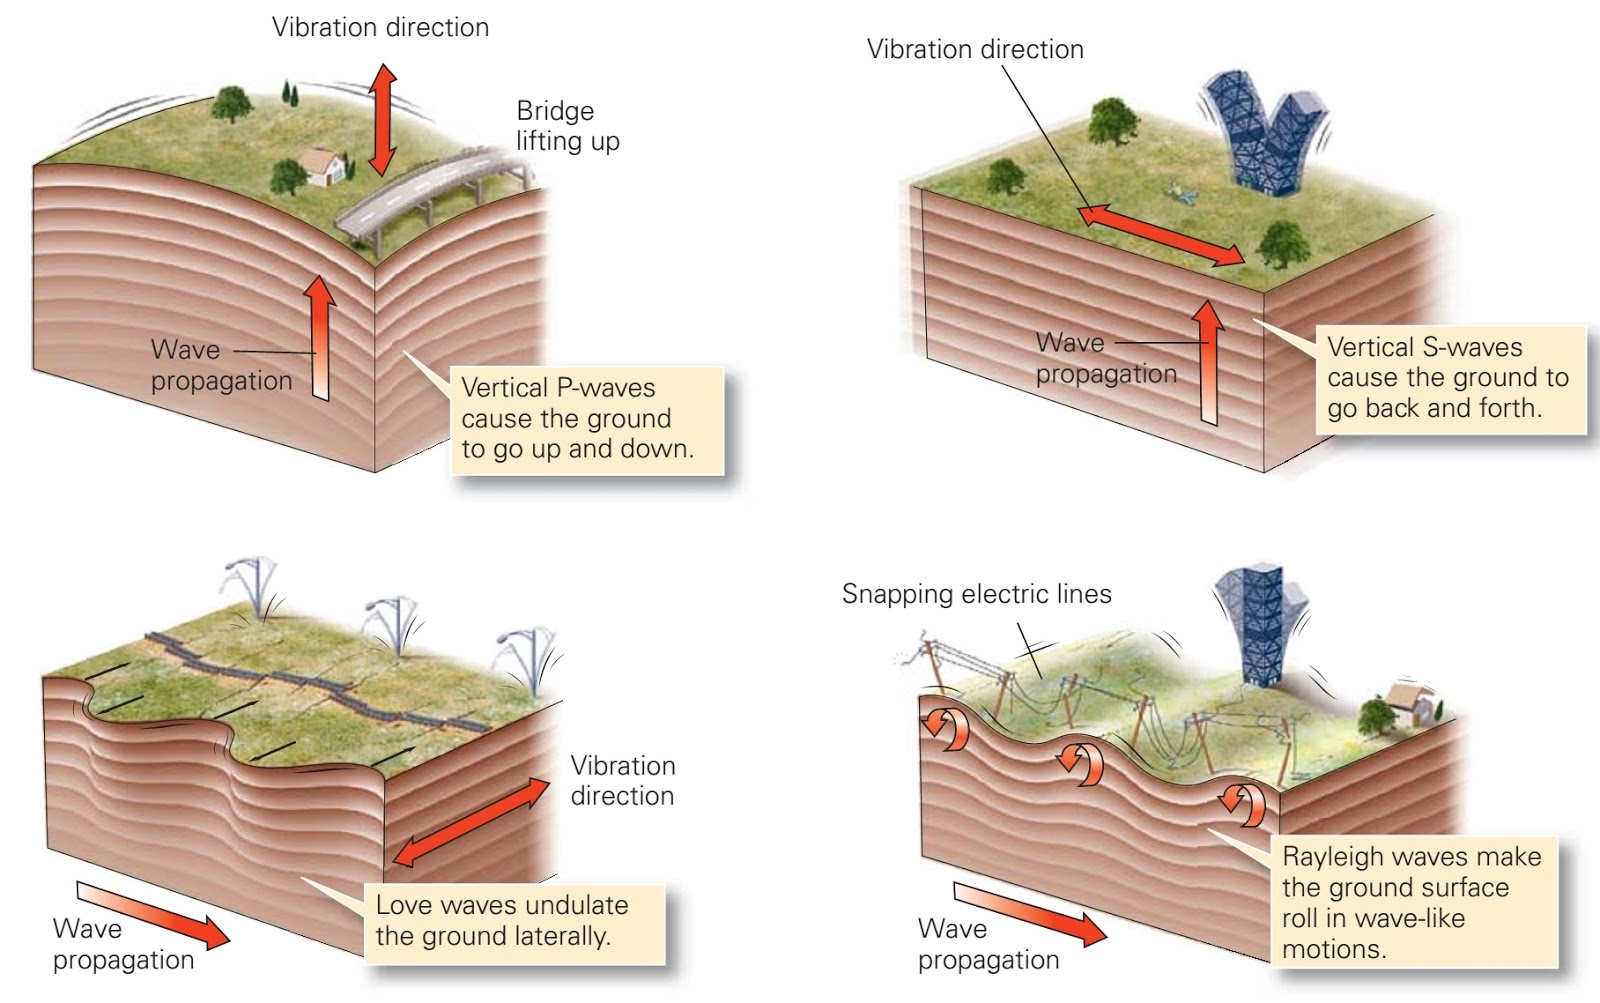 3 Types Of Faults Diagram Bluebird Bus Wiring Diagrams How Do Earthquakes Causes Damage Learning Geology